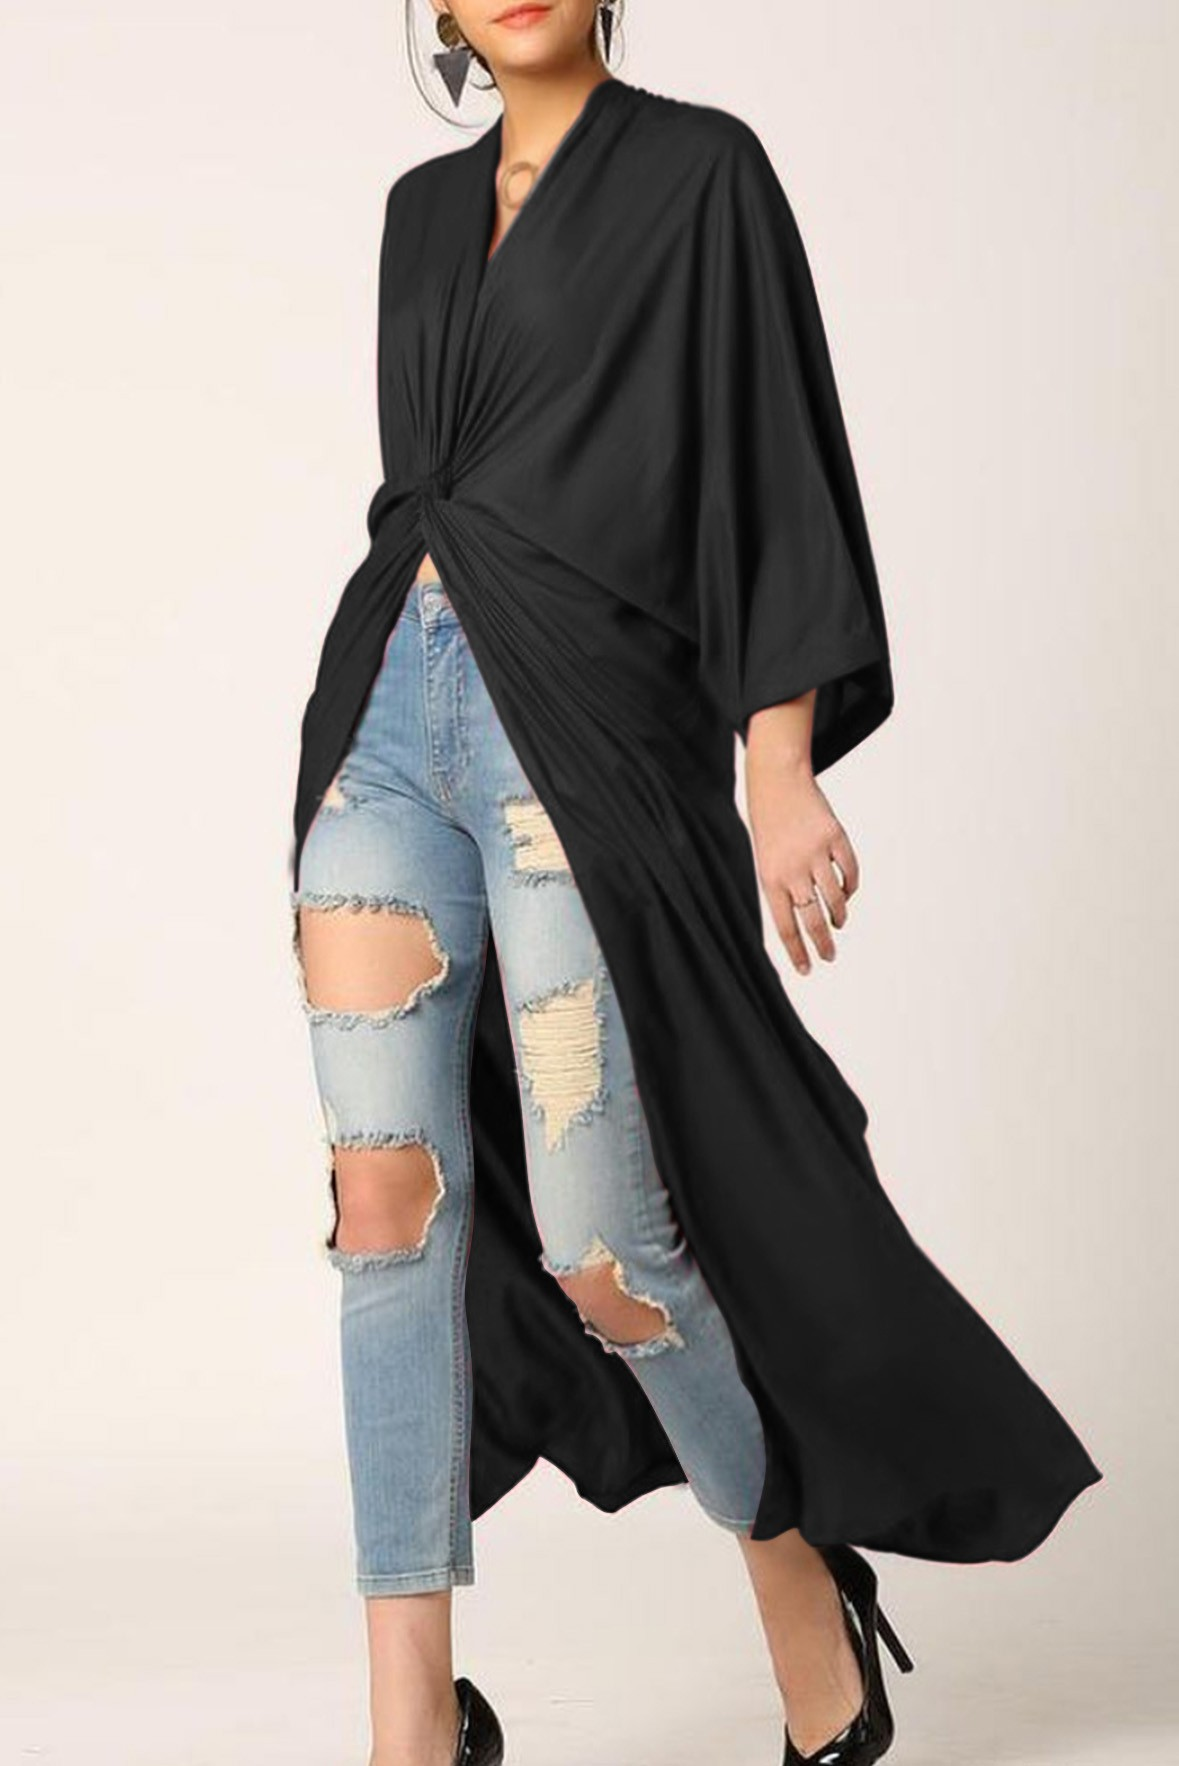 City lights tunic